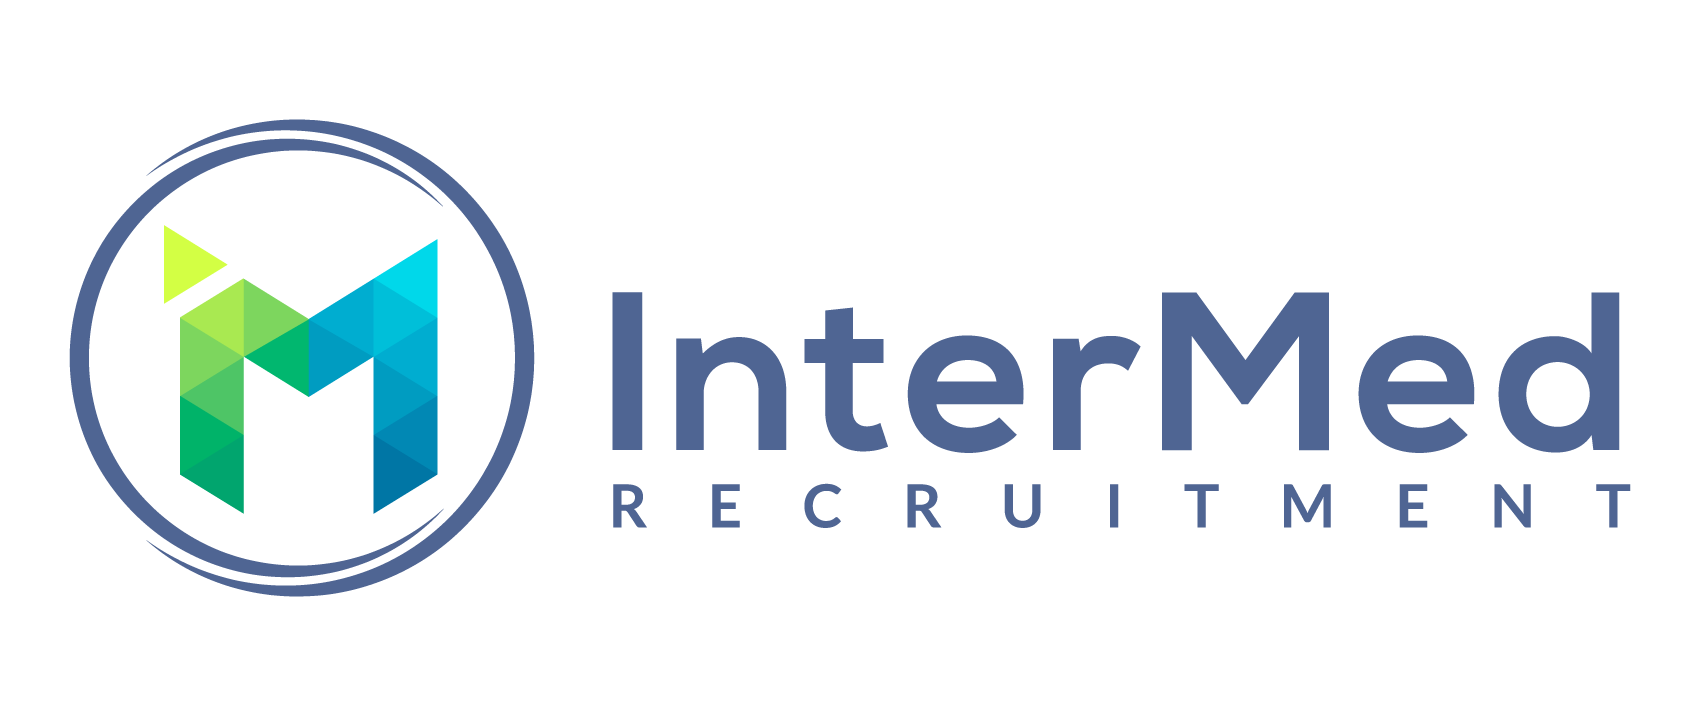 Innovative, expert life sciences recruitment consultancy looking for inspiring logo and website